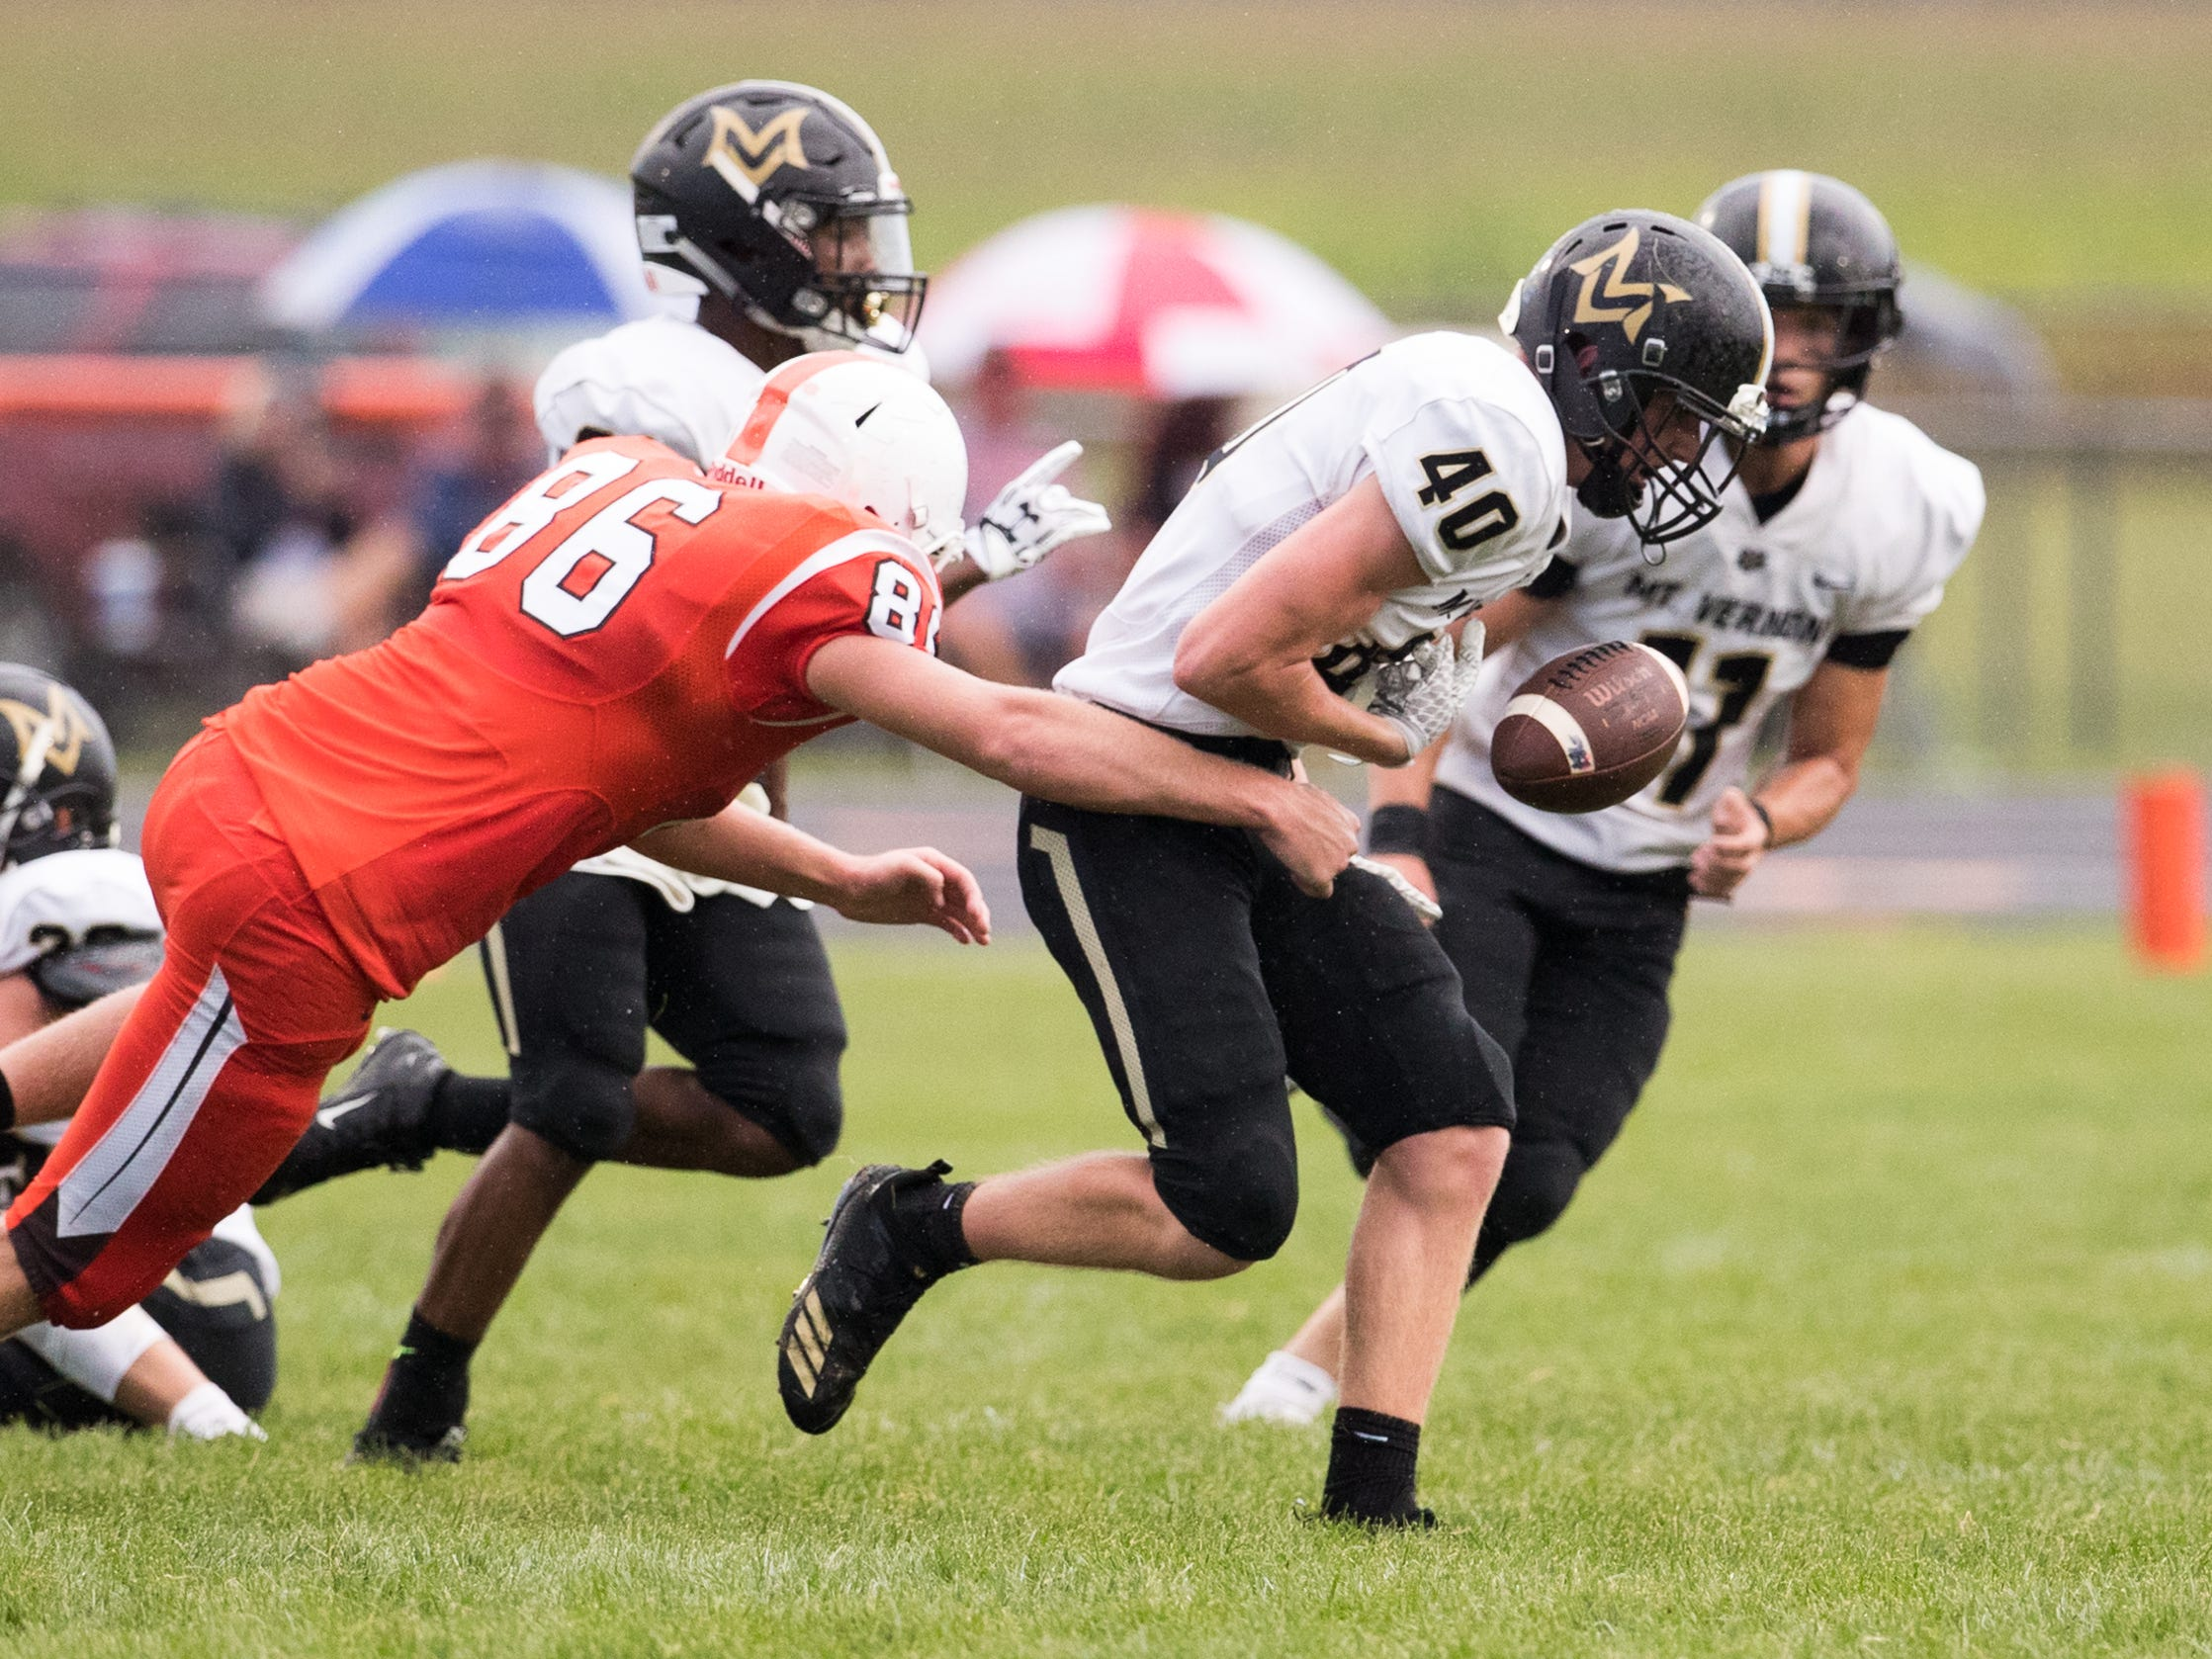 Cole Schneider of Mount Vernon High School, fumbles a ball that was recovered by a teammate, at Hamilton Heights High School football, won by MVHS, 43-14, Arcadia, Friday, Aug. 17, 2018. This game is the first for HHHS head coach Jon Kirschner, who faced his father Mike Kirschner, a veteran and champion coach in his first season at MVHS.